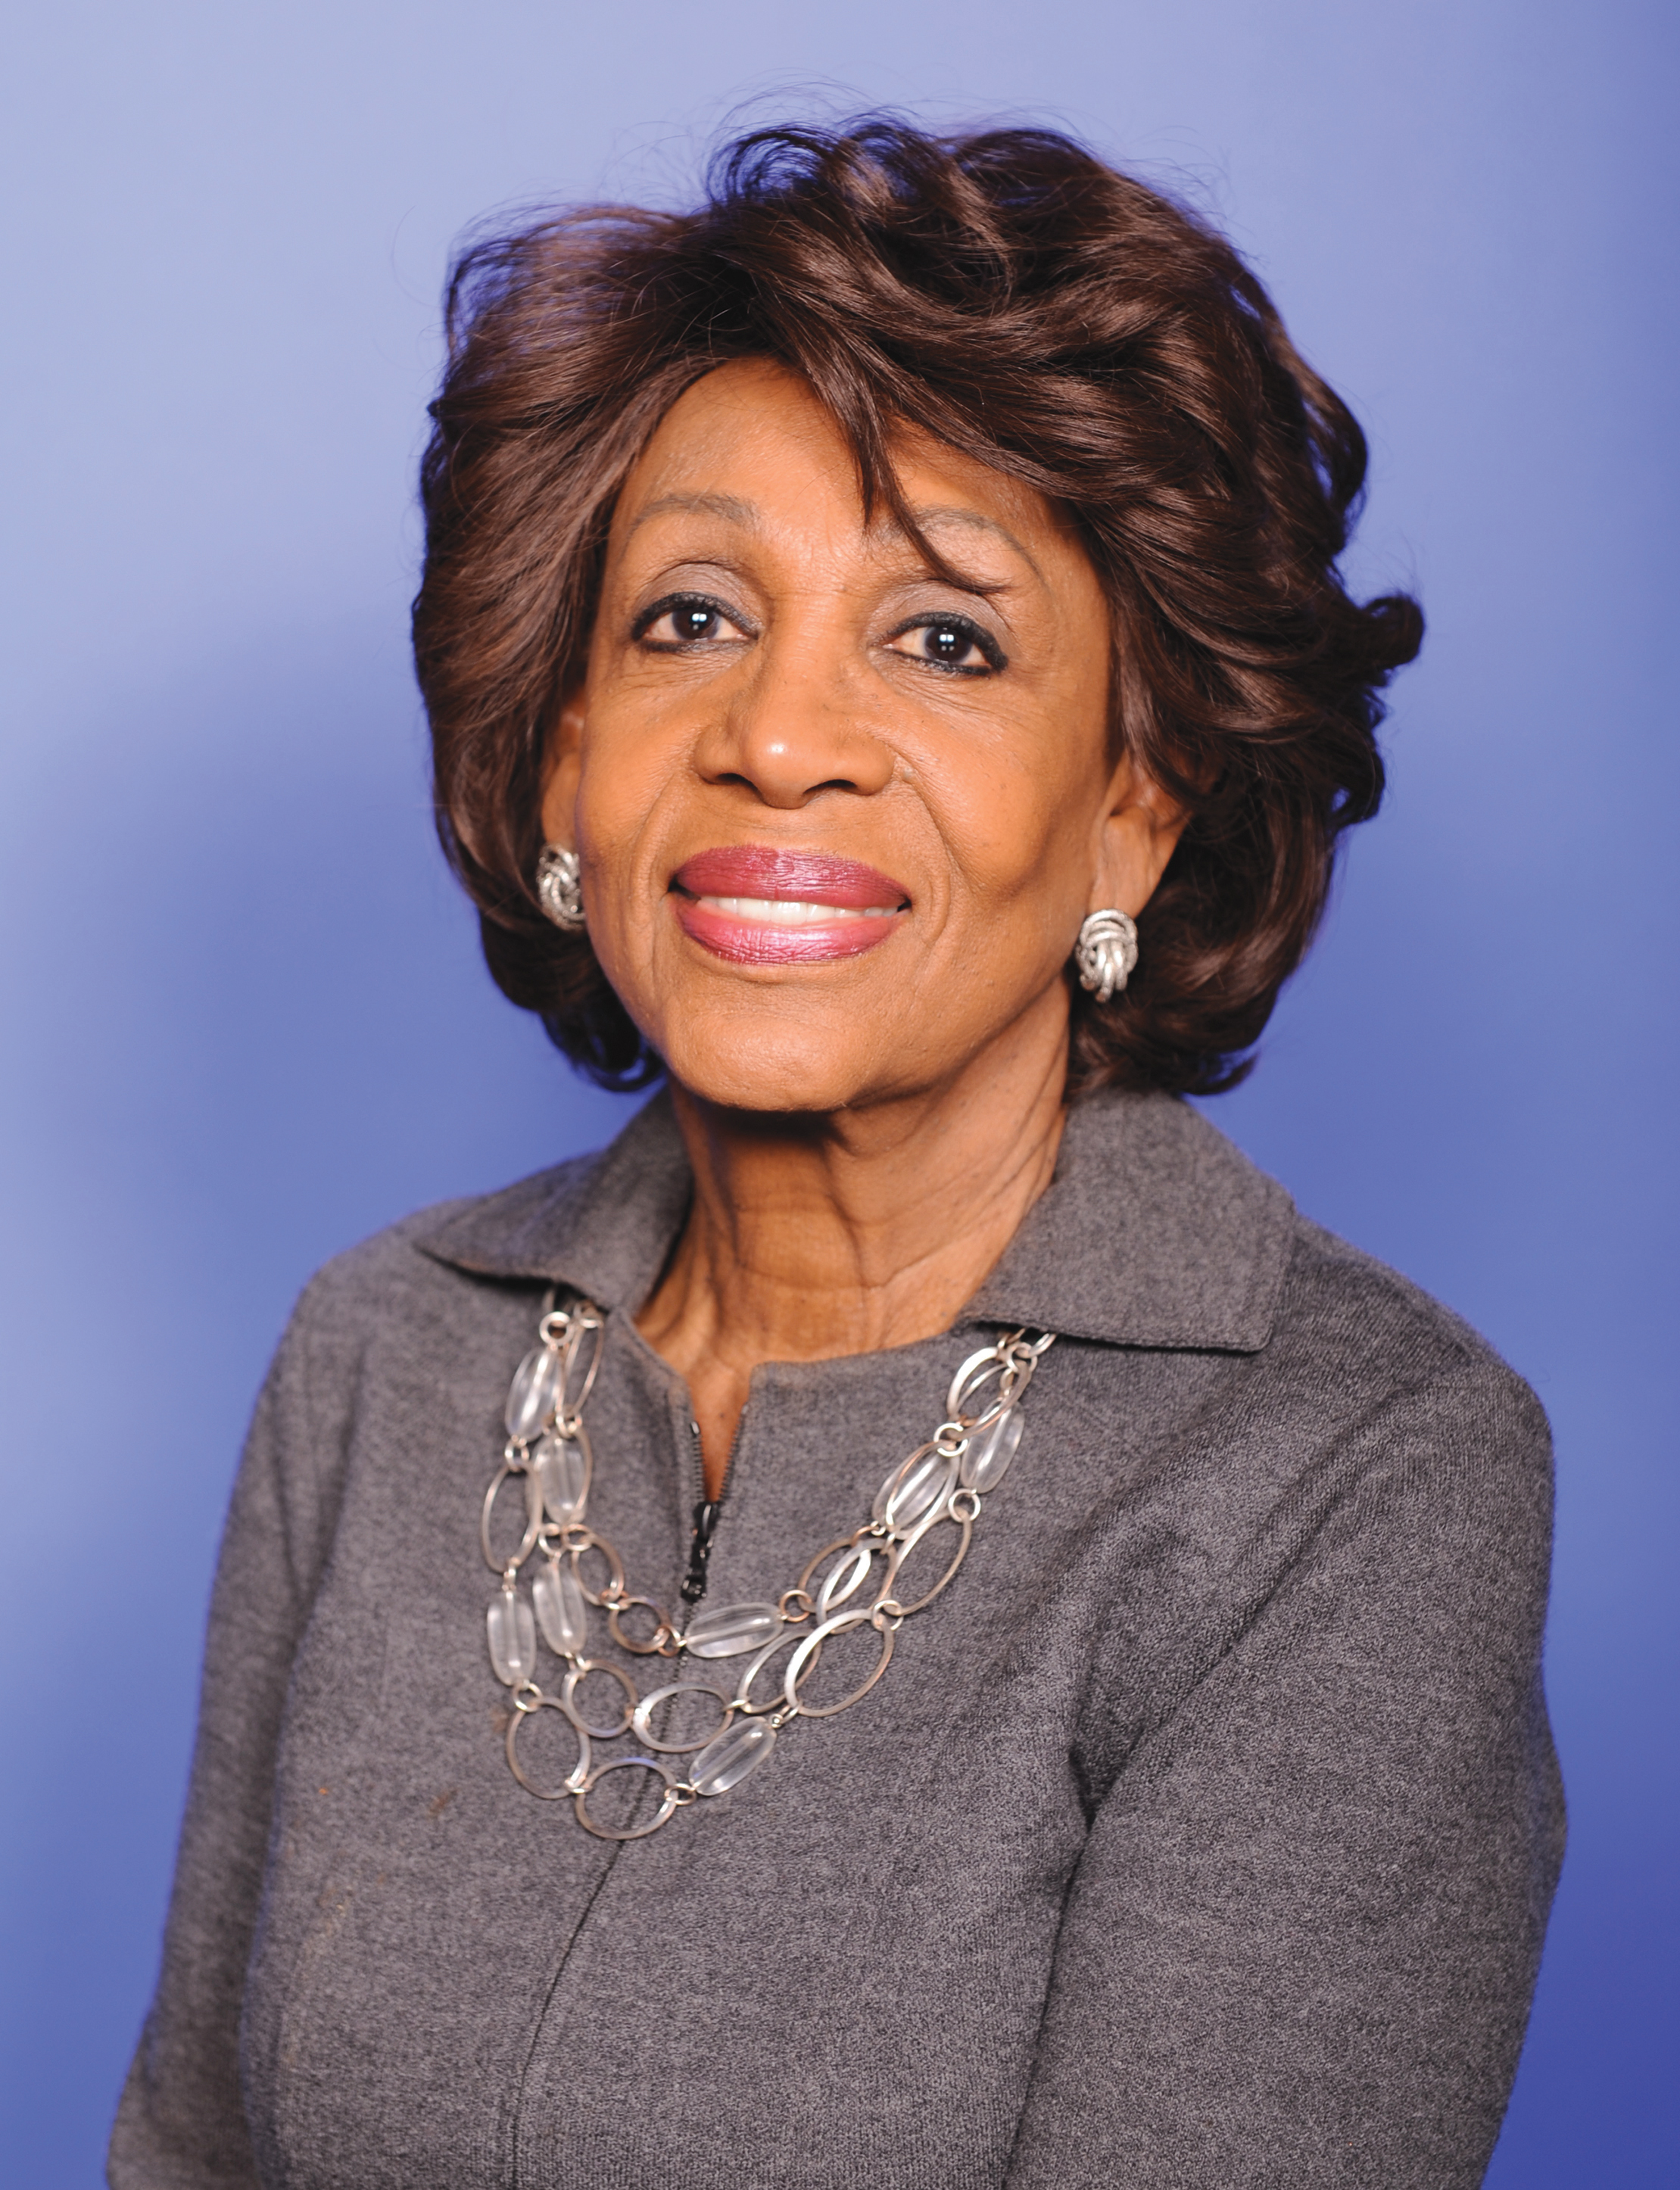 Congresswoman Maxine Waters (D-CA), Chairwoman of the House Committee on Financial Services, delivered the attached remarks during her first policy speech in the 116th Congress.